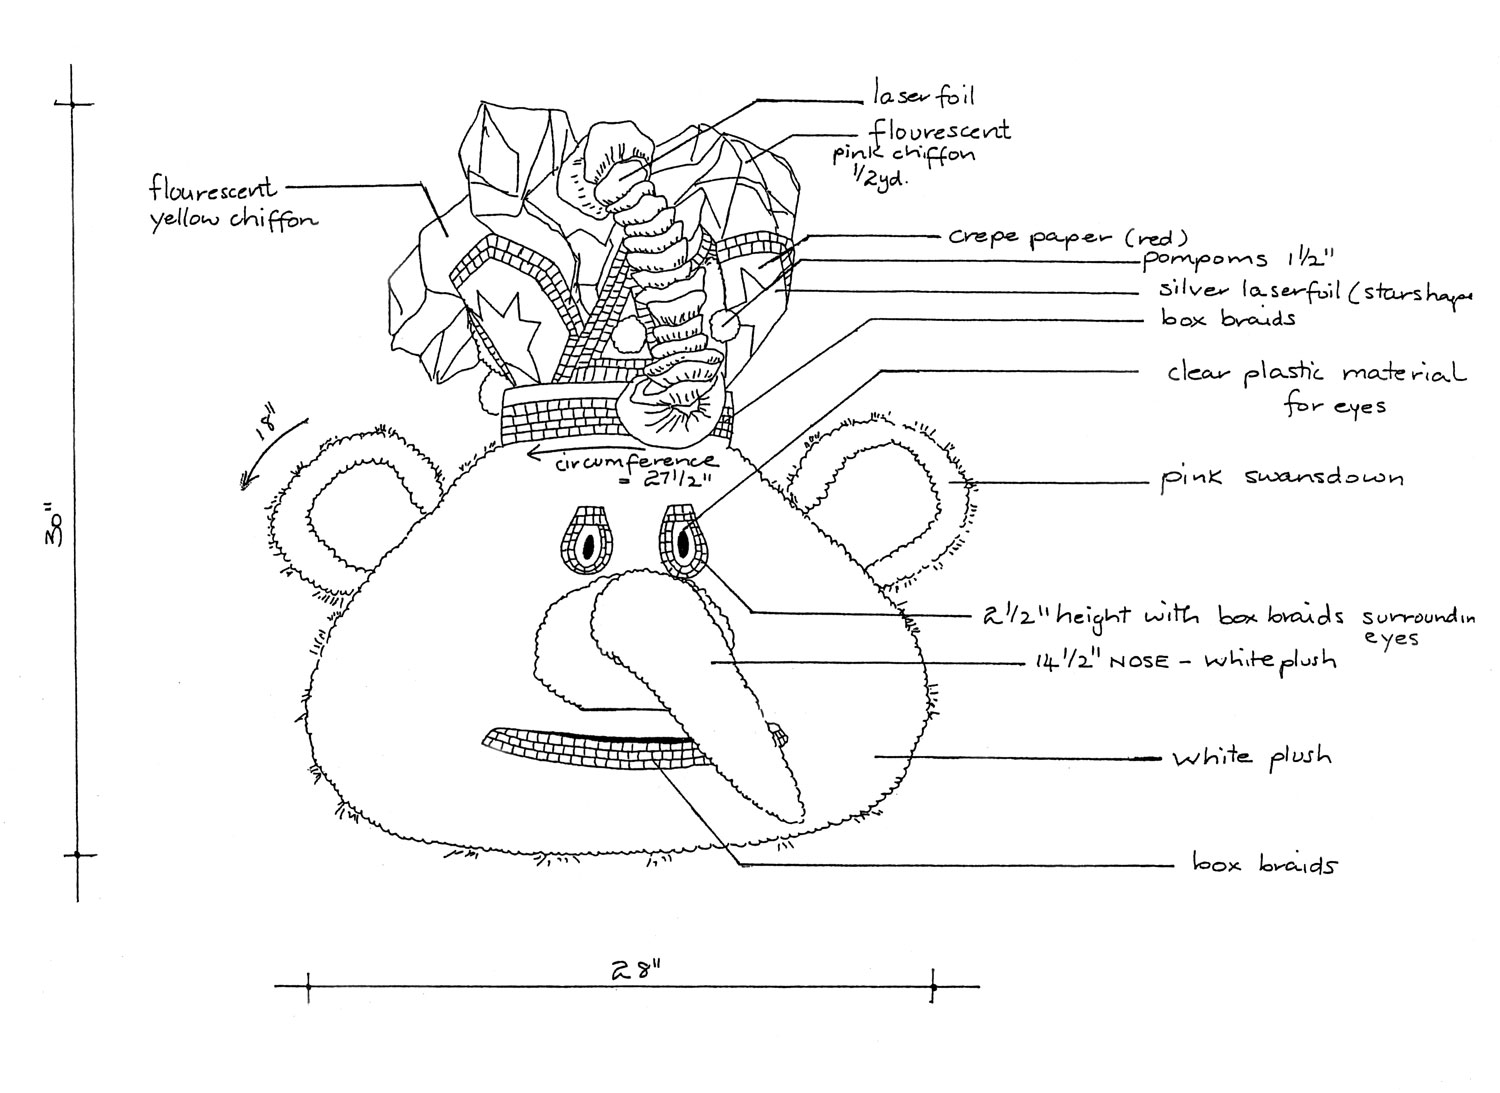 Blueprint for a King Sailor headpiece, designed and made by Bill Trotman. Illustration courtesy The Carnival Institute